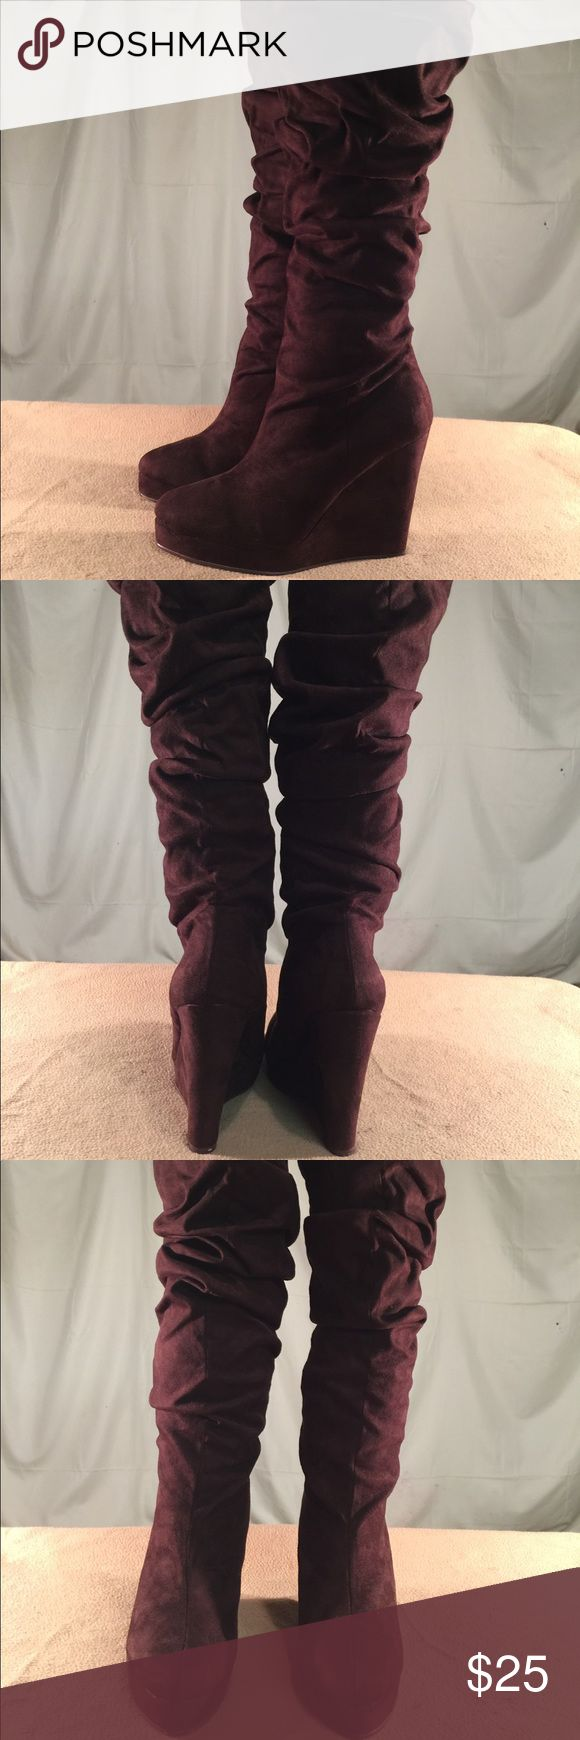 Michael Antonio Brown Above The Knee Suede Boots These boots have been Very Gently Worn and are in PERFECT CONDITION. The wedge height of these boots is 4.5 inches tall and these are Slip On boots. They do not have a zipper. Michael Antonio Shoes Over the Knee Boots